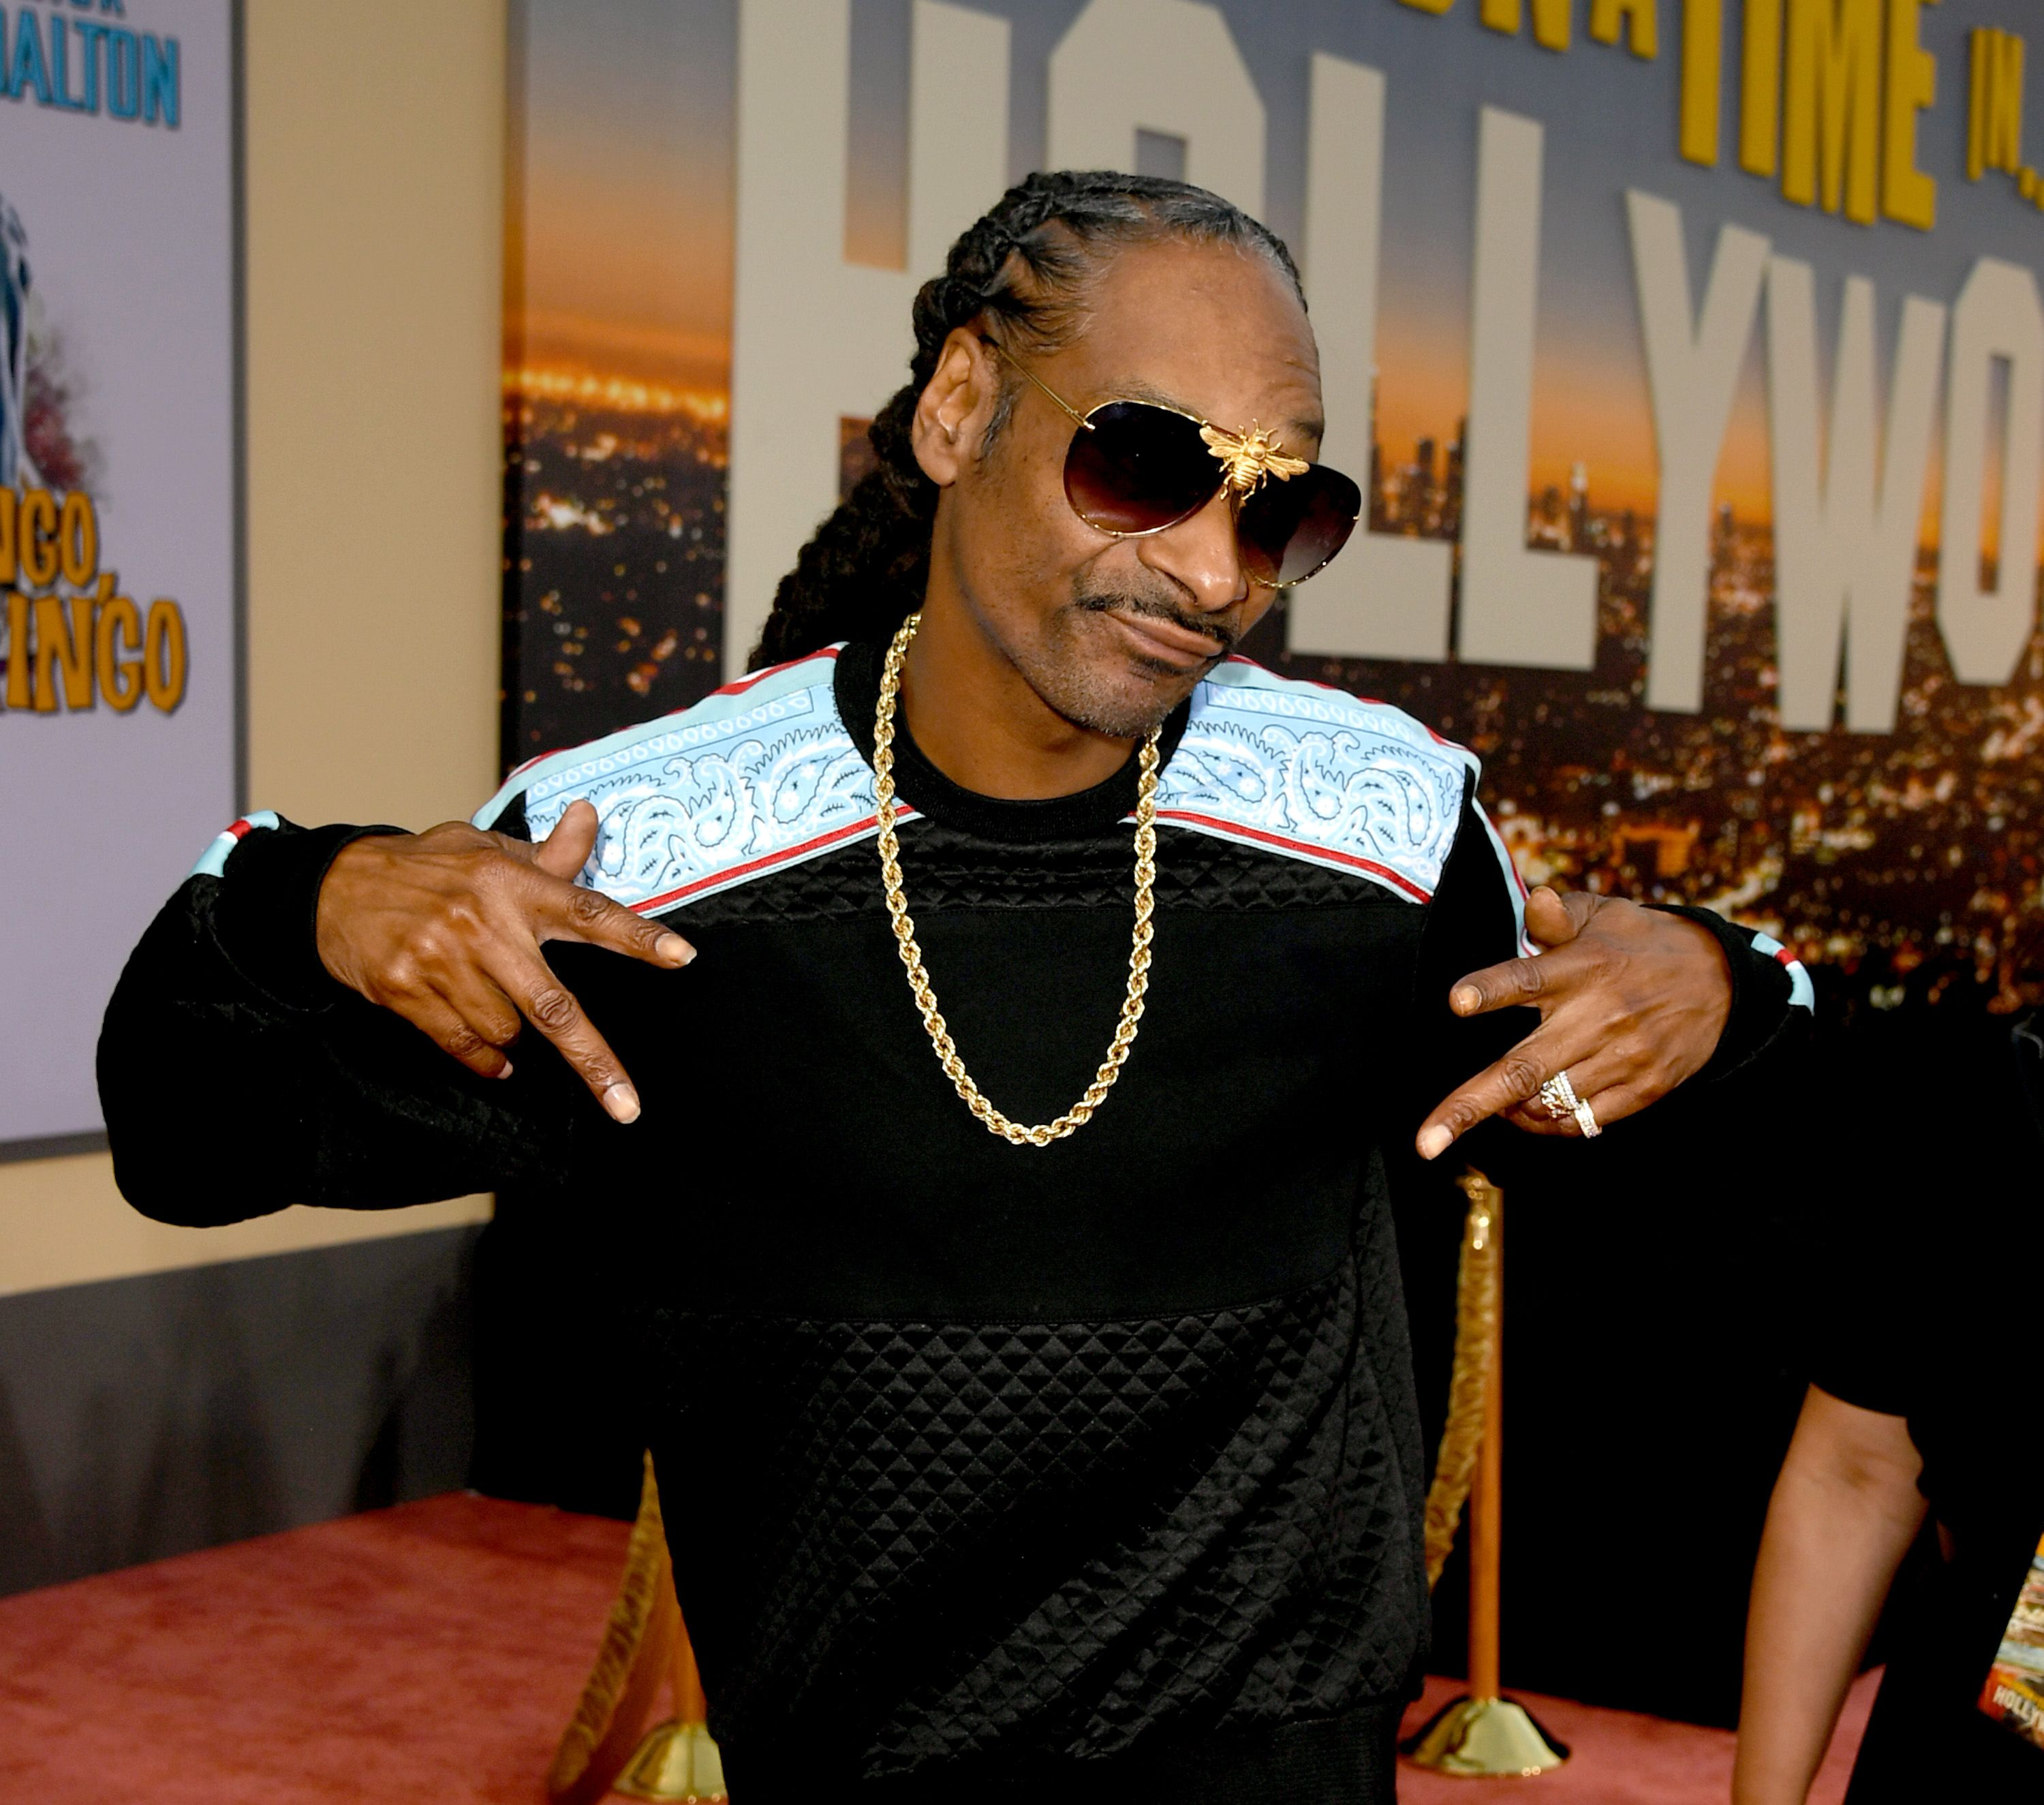 Rapper Snoop Dogg plans to clear the air about Kobe Bryant controversy with Gayle King